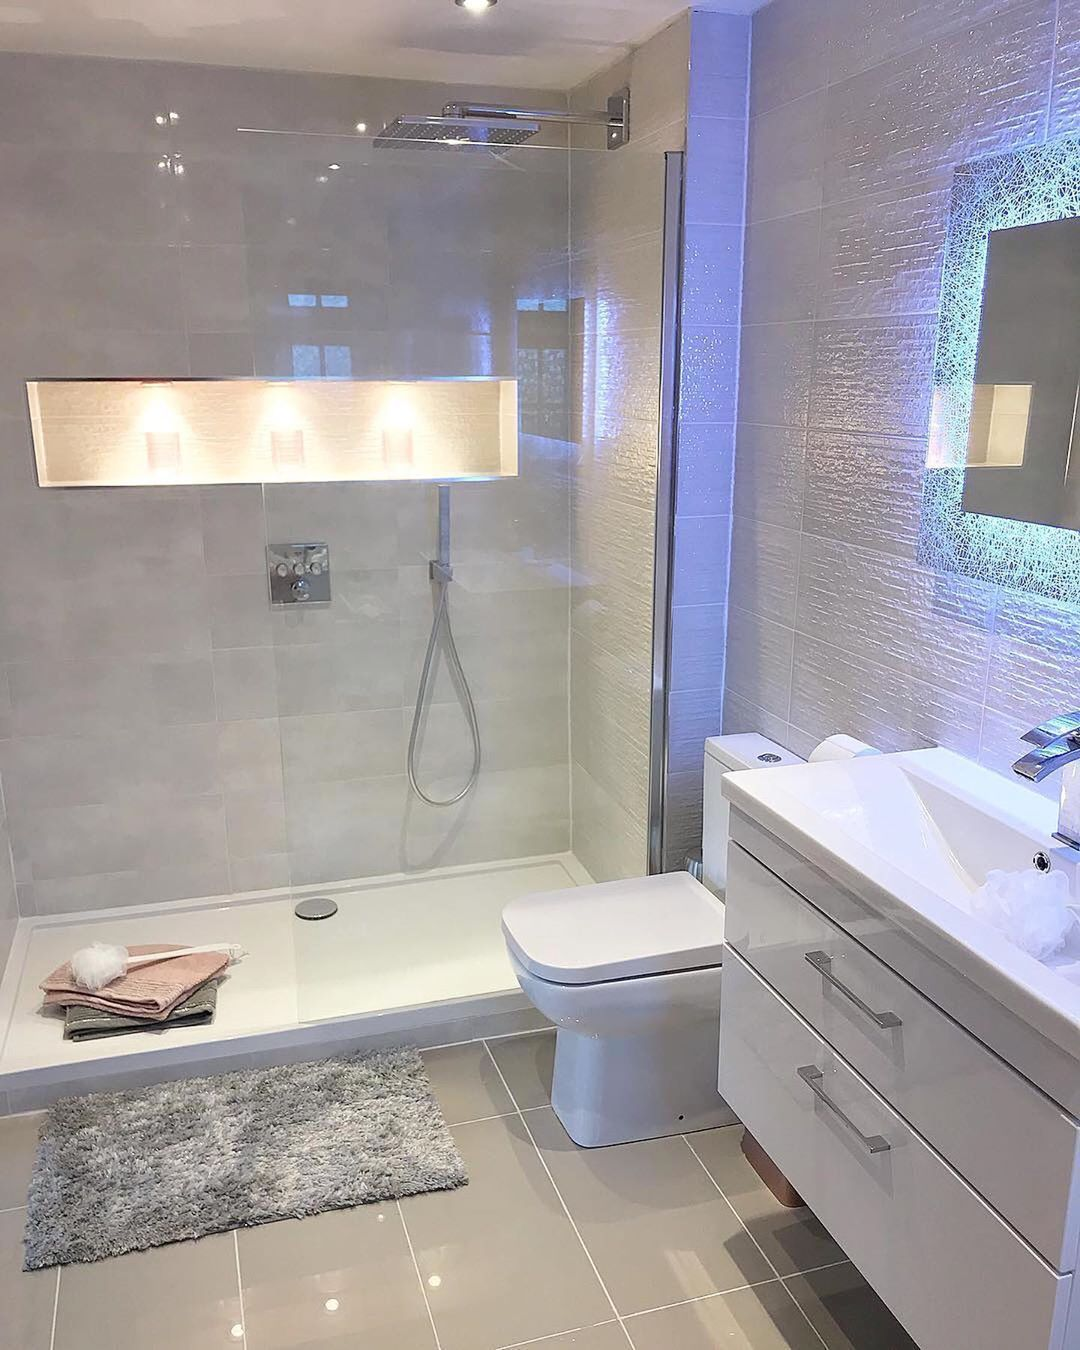 Check Out This Newly Renovated En Suite Bathroom Of Mrs Rackley Home The En Suite She And Her Husb Bathroom Interior Design Bathroom Interior Bathroom Design Ensuite bathroom design ideas